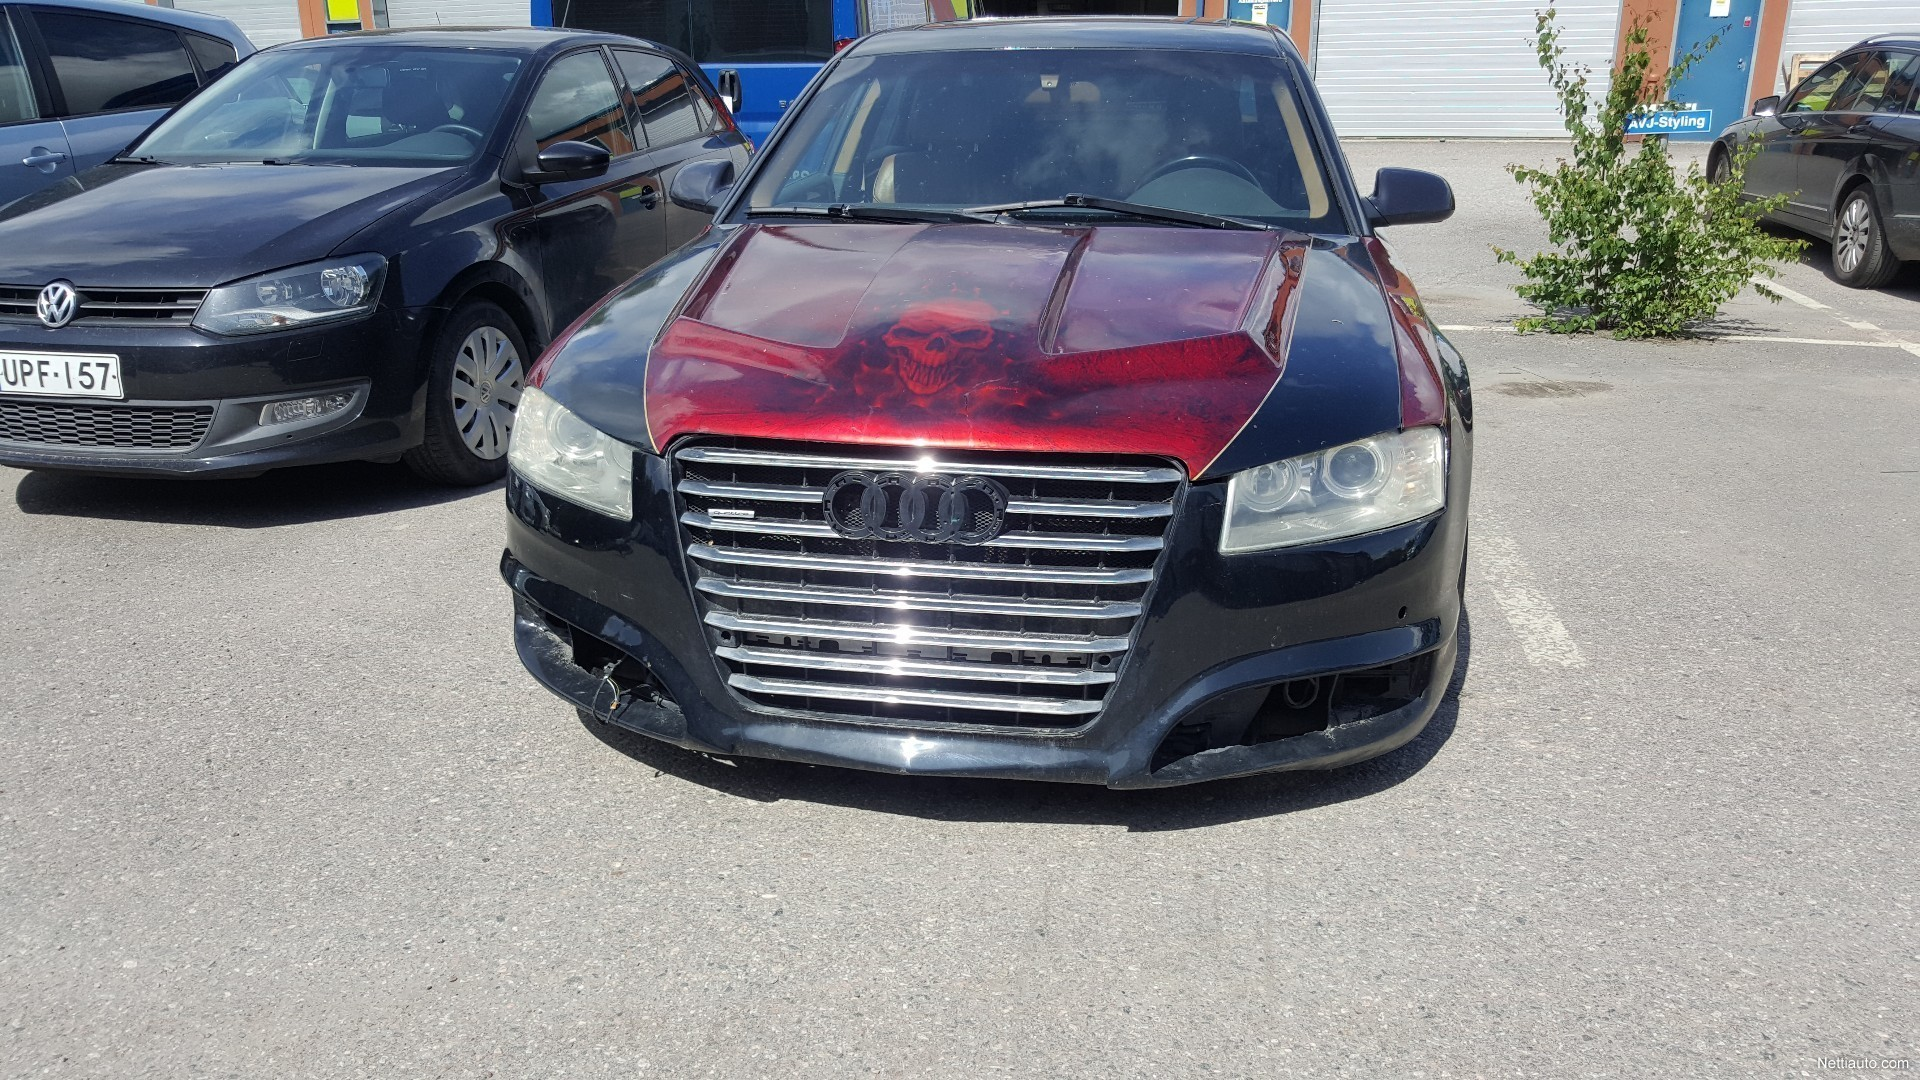 Used Cars For Sale By Private Owner >> Audi A8 4 0 Tdi Quattro 4d Tiptronic Sedan 2003 Used